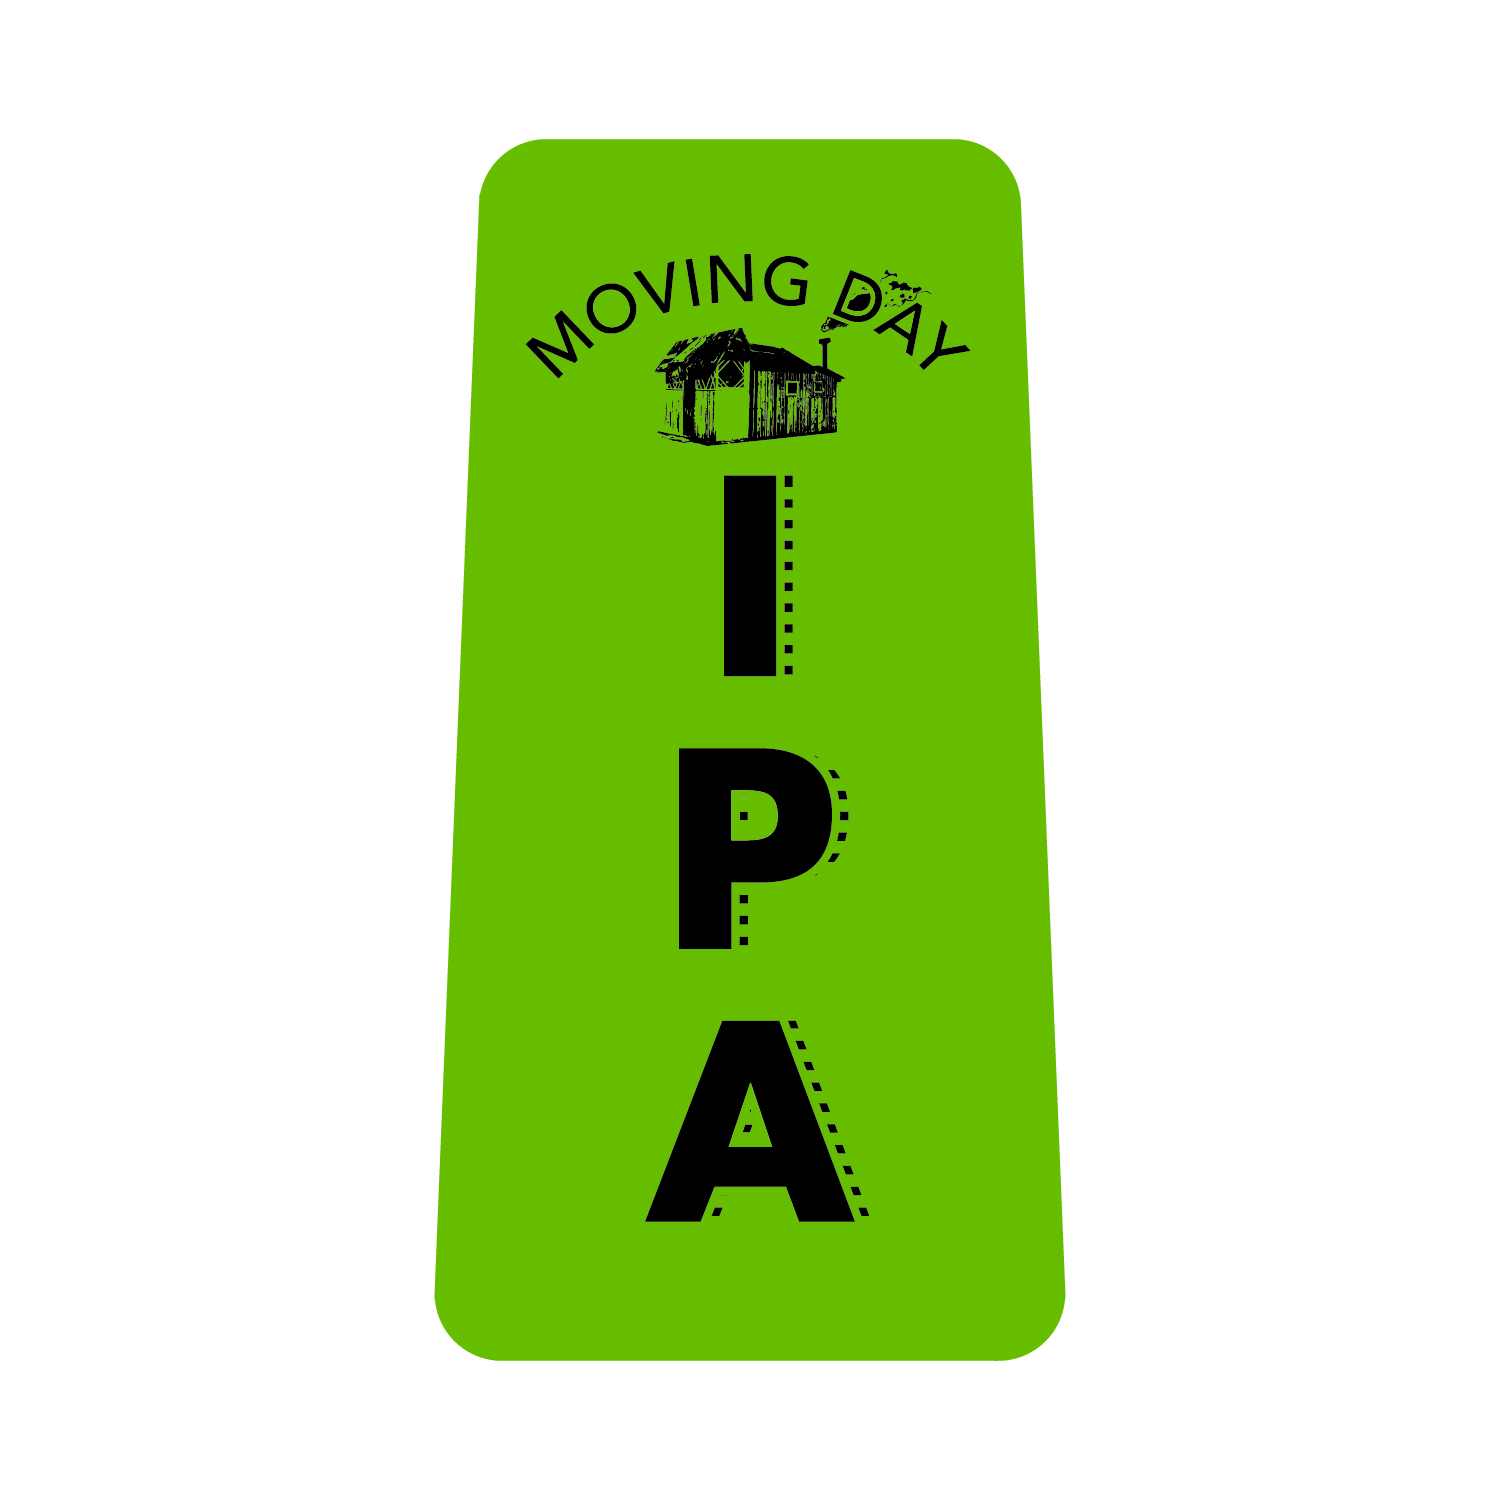 - MOVING DAY IPA - 6.4% ABV, 55 IBU's; India Pale Ale; Moving Day IPA is packed with resinous/citrus/tropical flavors and aromas thanks to 4 different hop varieties and is balanced by its solid malt bill featuring Munich and Crystal malts.